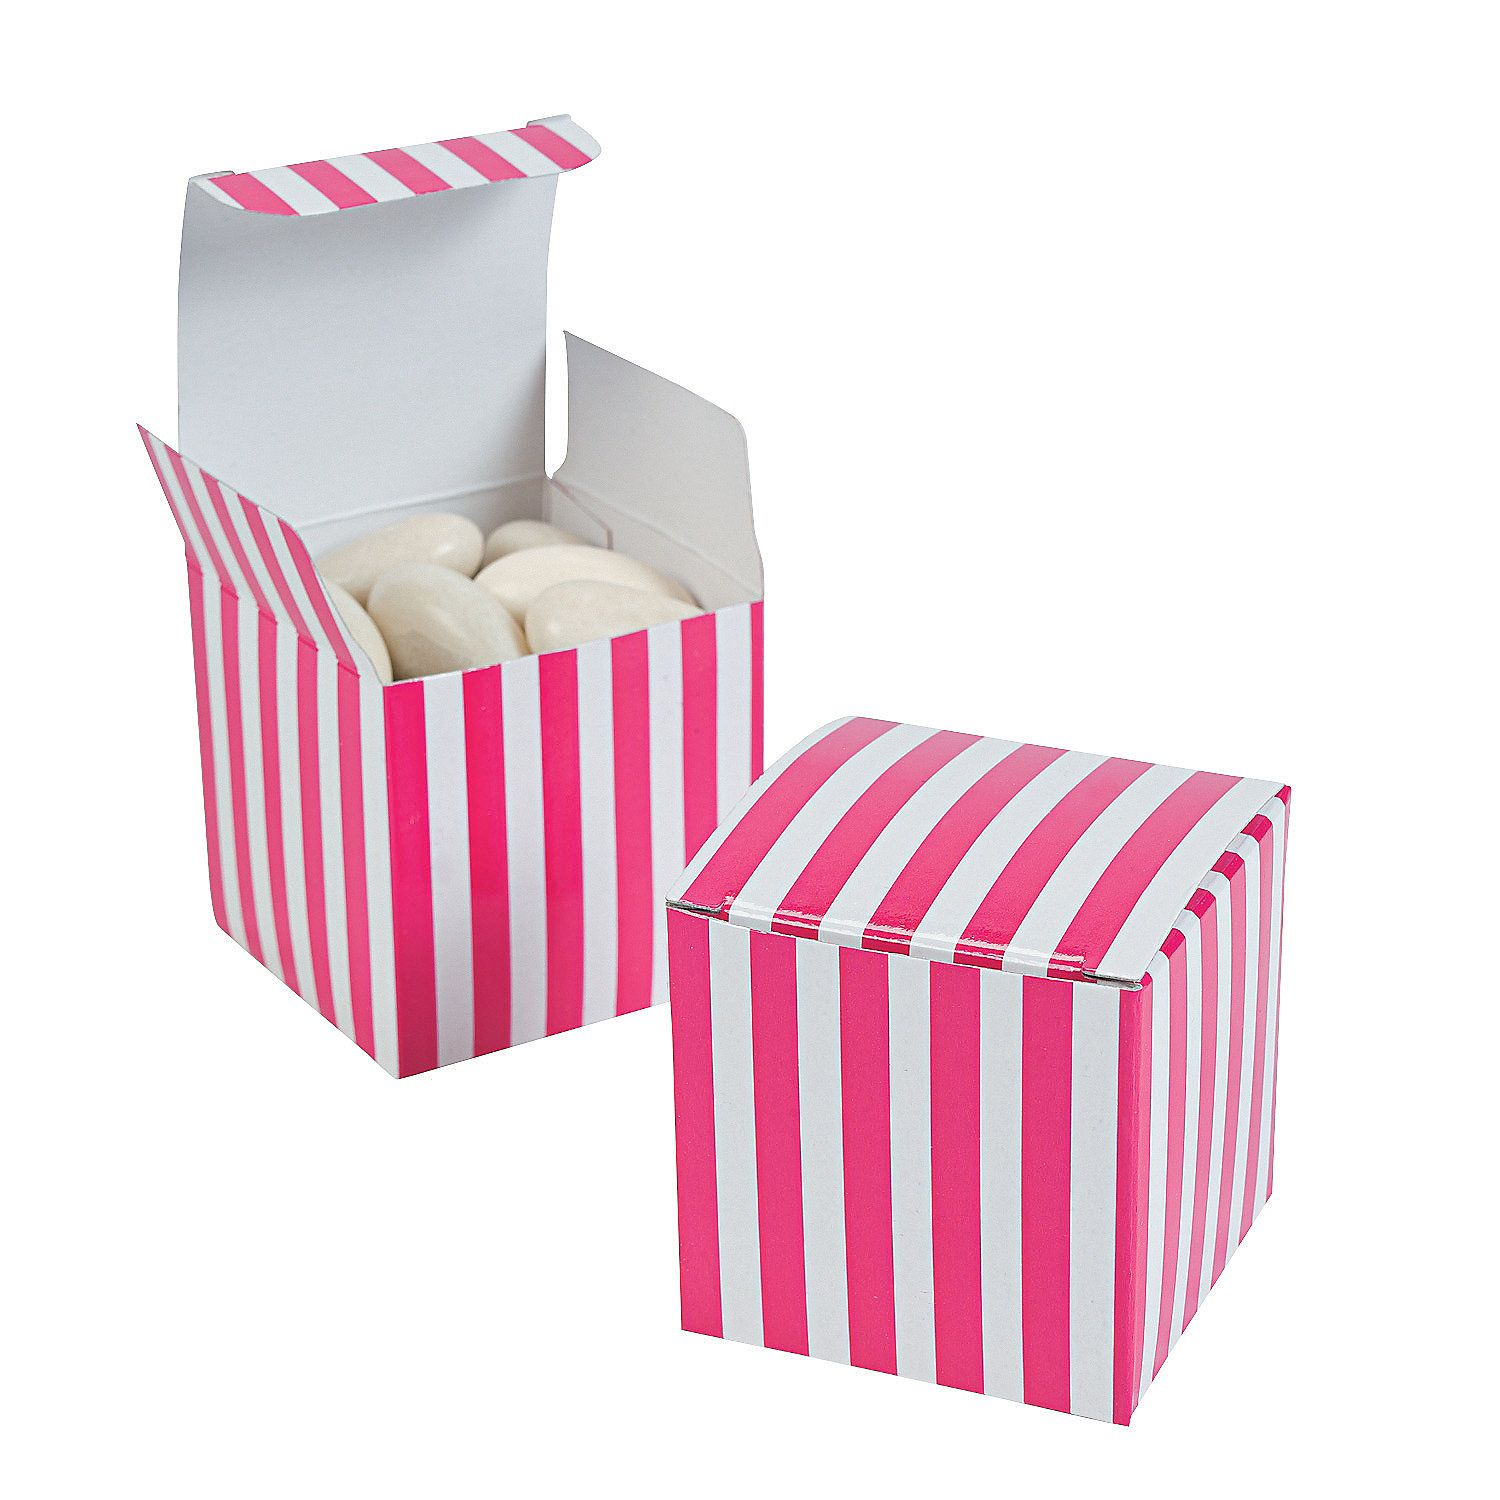 Hot Pink Striped Gift Boxes - OrientalTrading.com #OrientalTrading ...